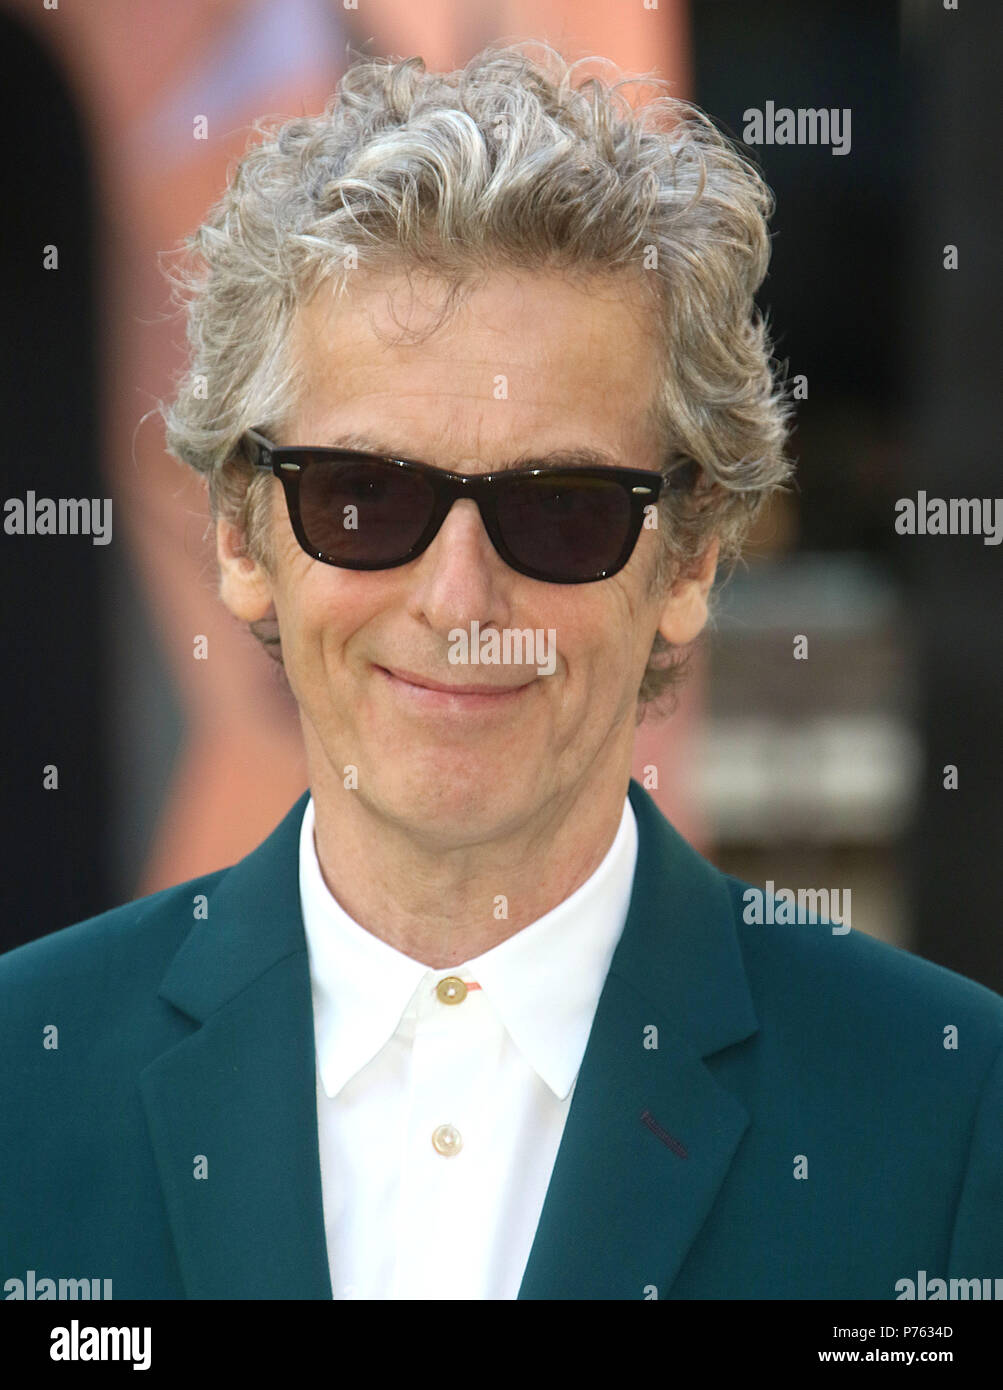 Jun 06, 2018 - Peter Capaldi attending Royal Academy Of Arts 250th Summer Exhibition Preview Party at Burlington House in London, England, UK - Stock Image